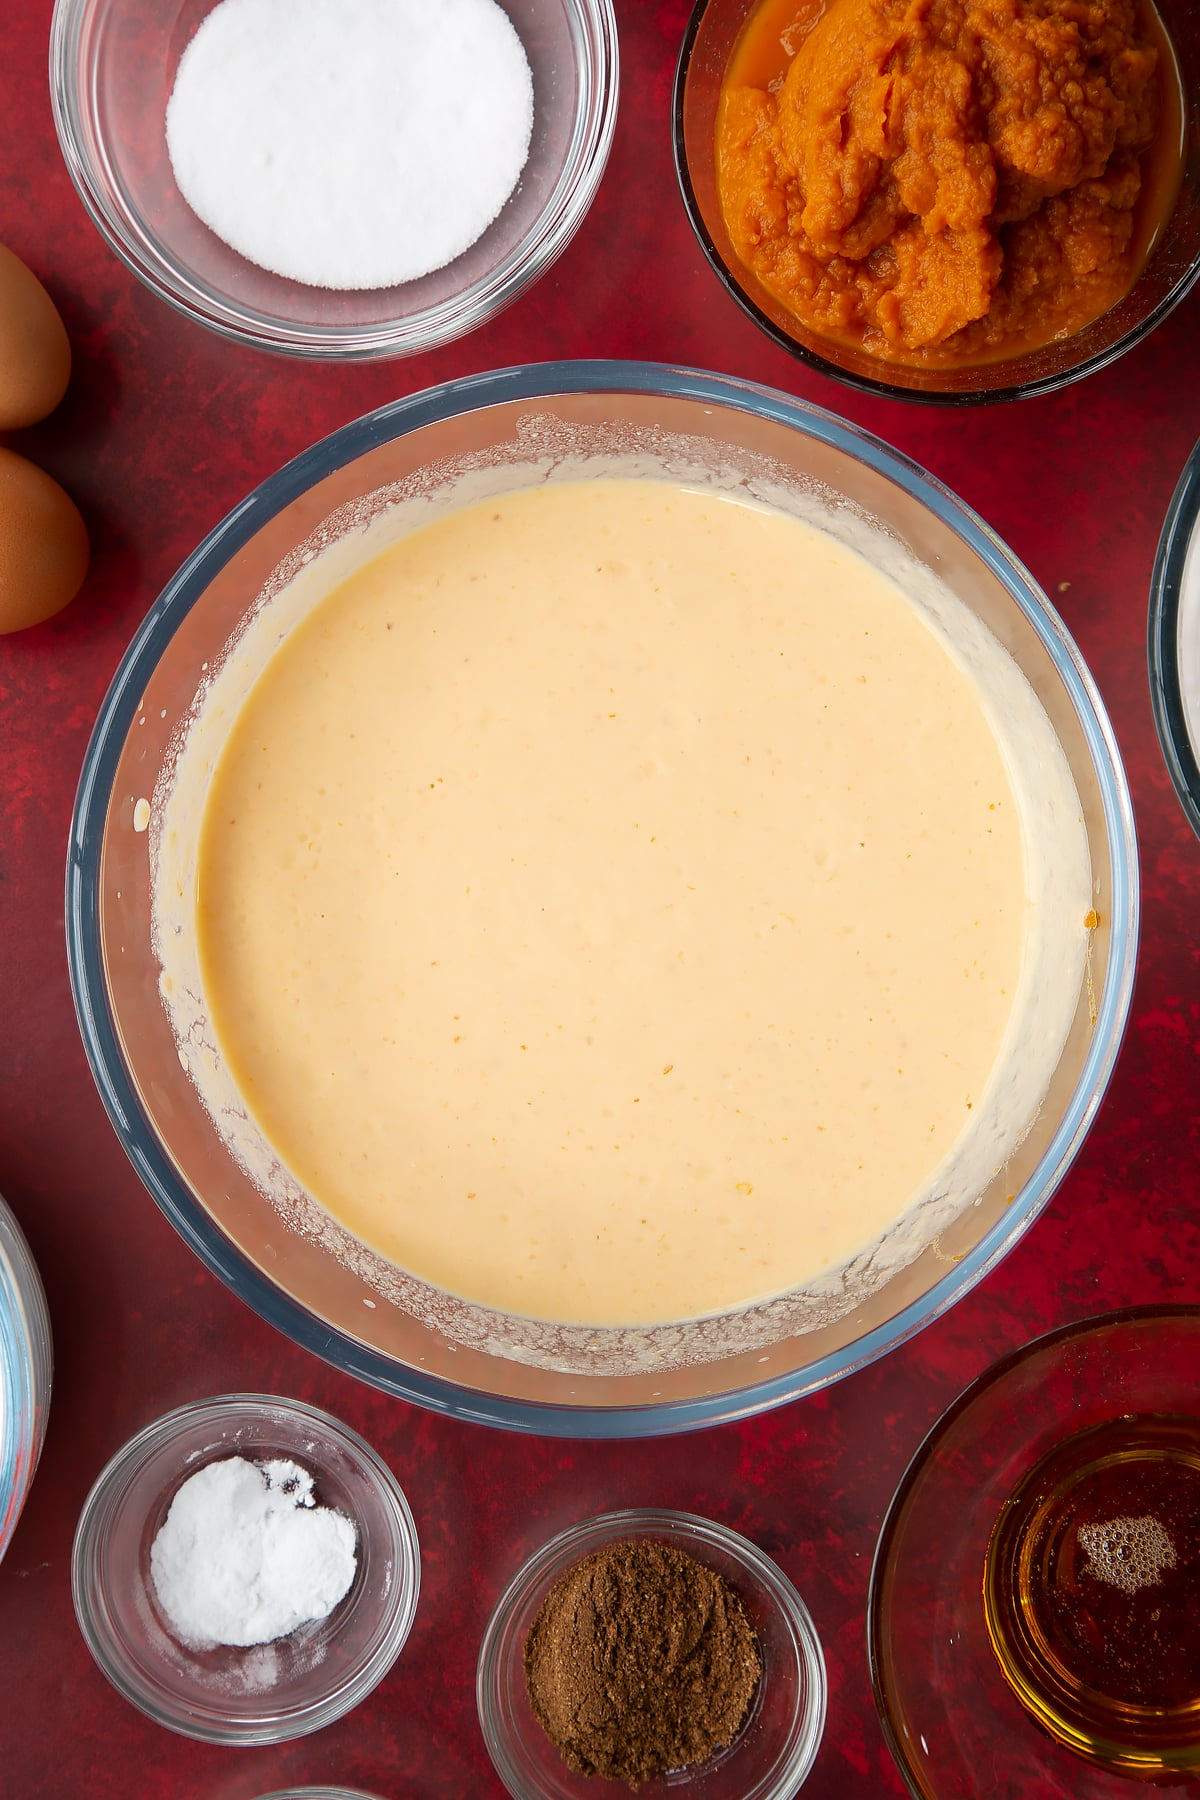 Yogurt, egg, milk and pumpkin puree, whisked together in a glass mixing bowl. Ingredients to make Halloween pancakes surround the bowl.